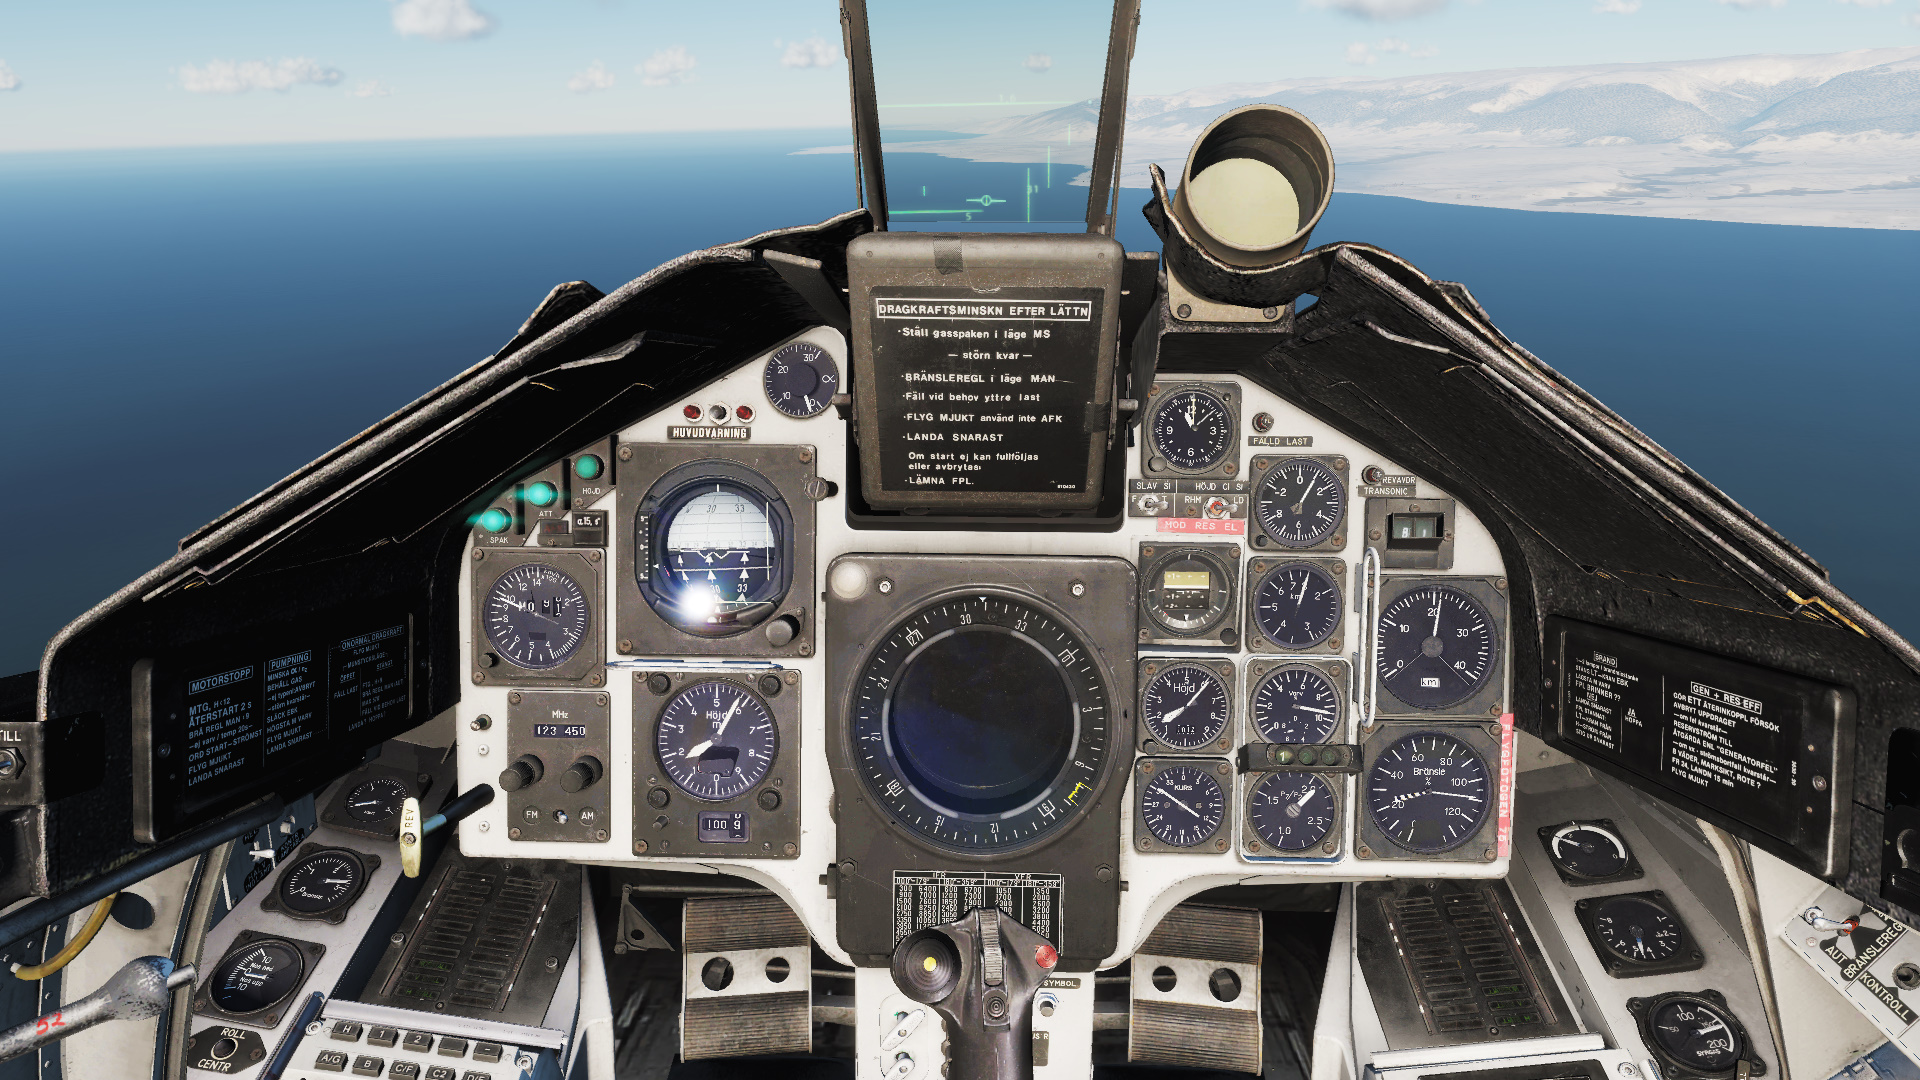 DCS AJS37 Viggen Swedish Cockpit HD Textures without Mipmaps